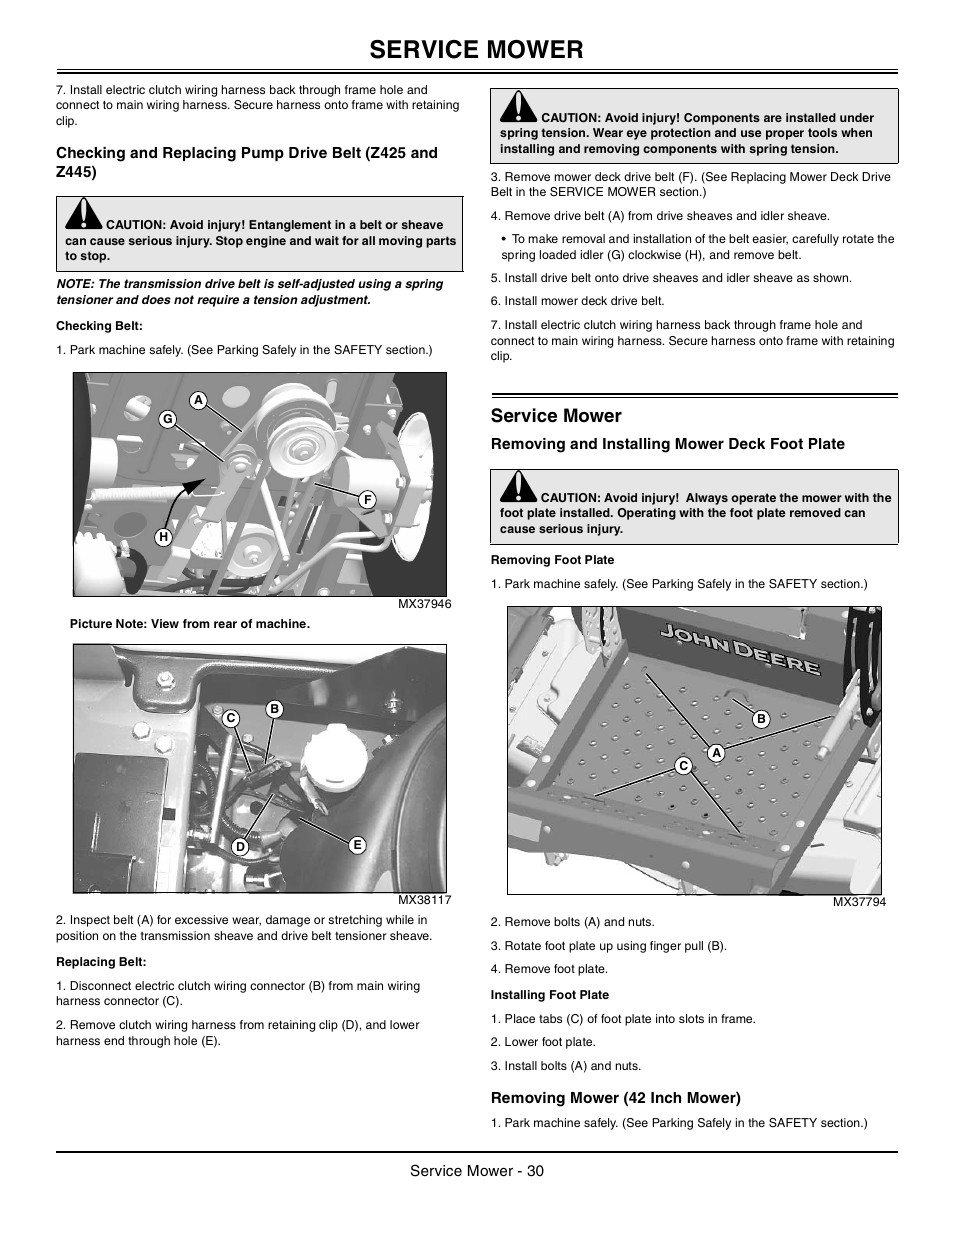 Checking Belt Replacing Service Mower John Deere Z425 User. Checking Belt Replacing Service Mower John Deere Z425 User Manual Page 31 48. John Deere. John Deere Z445 Zero Turn Transmission Diagram At Scoala.co